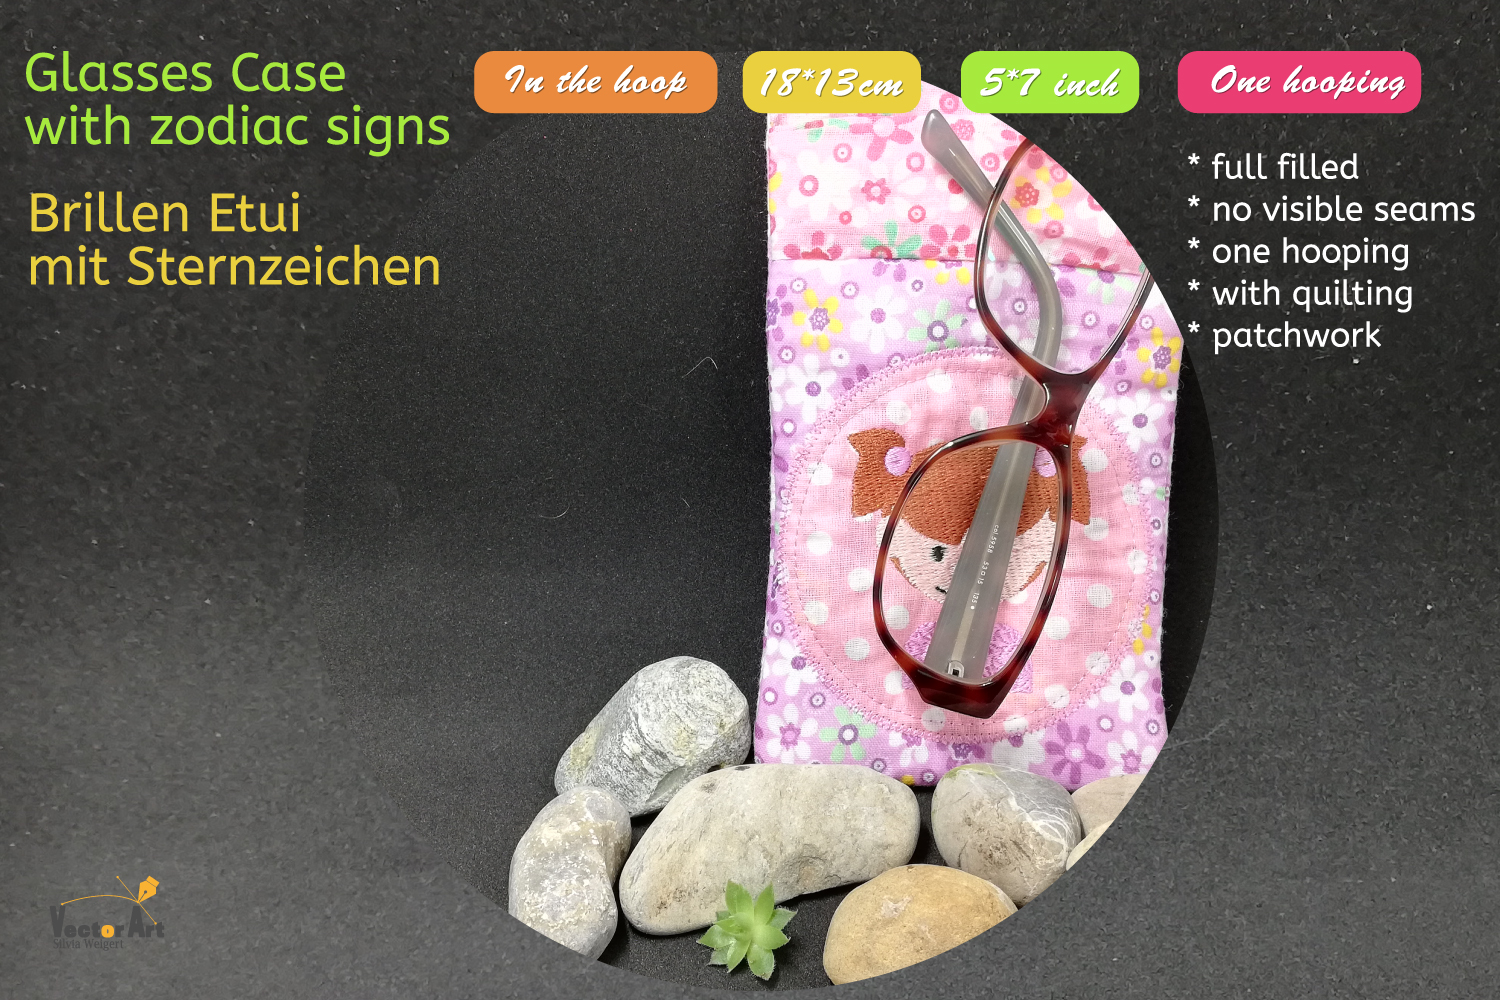 ITH - Glasses Case with Zodiac sign Virgo - Embroidery file example image 5